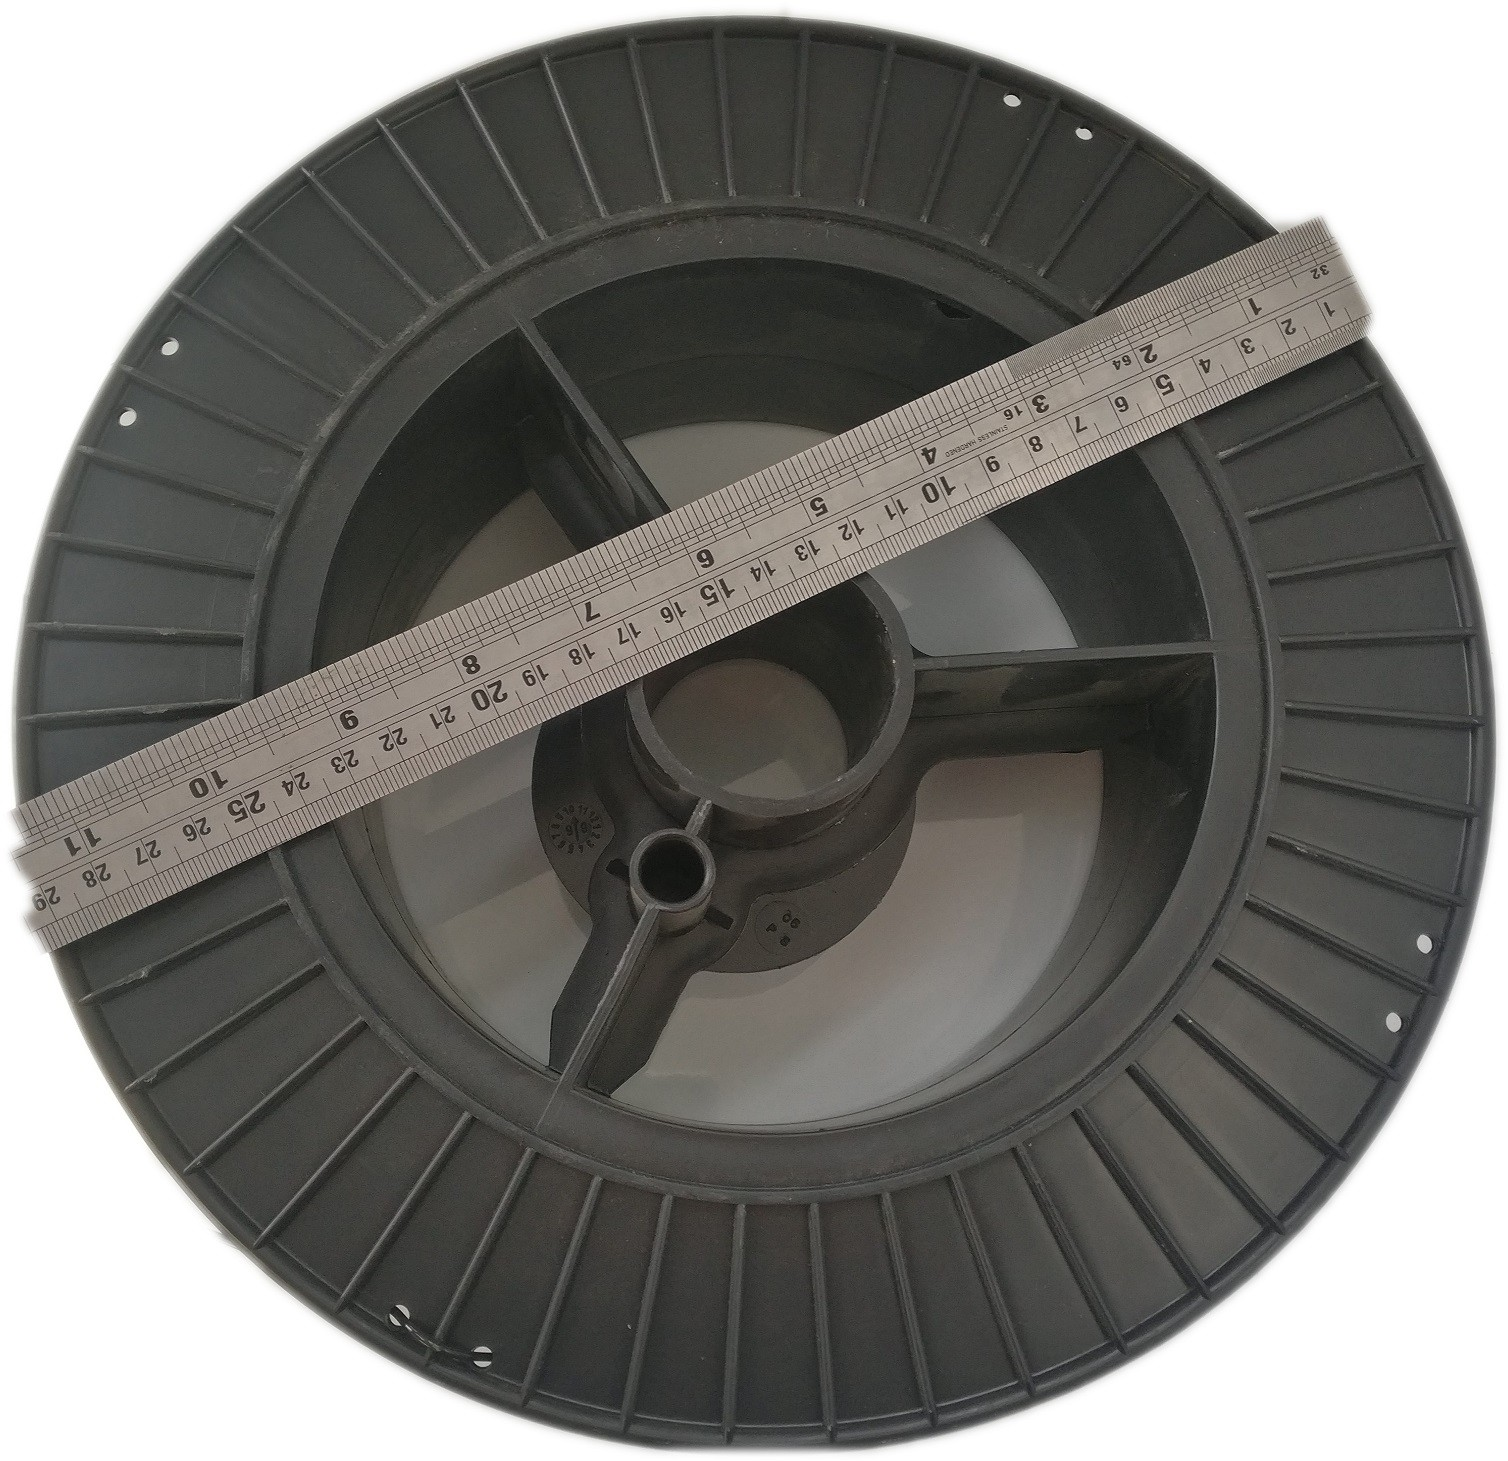 Did you know about our commercial size spools?